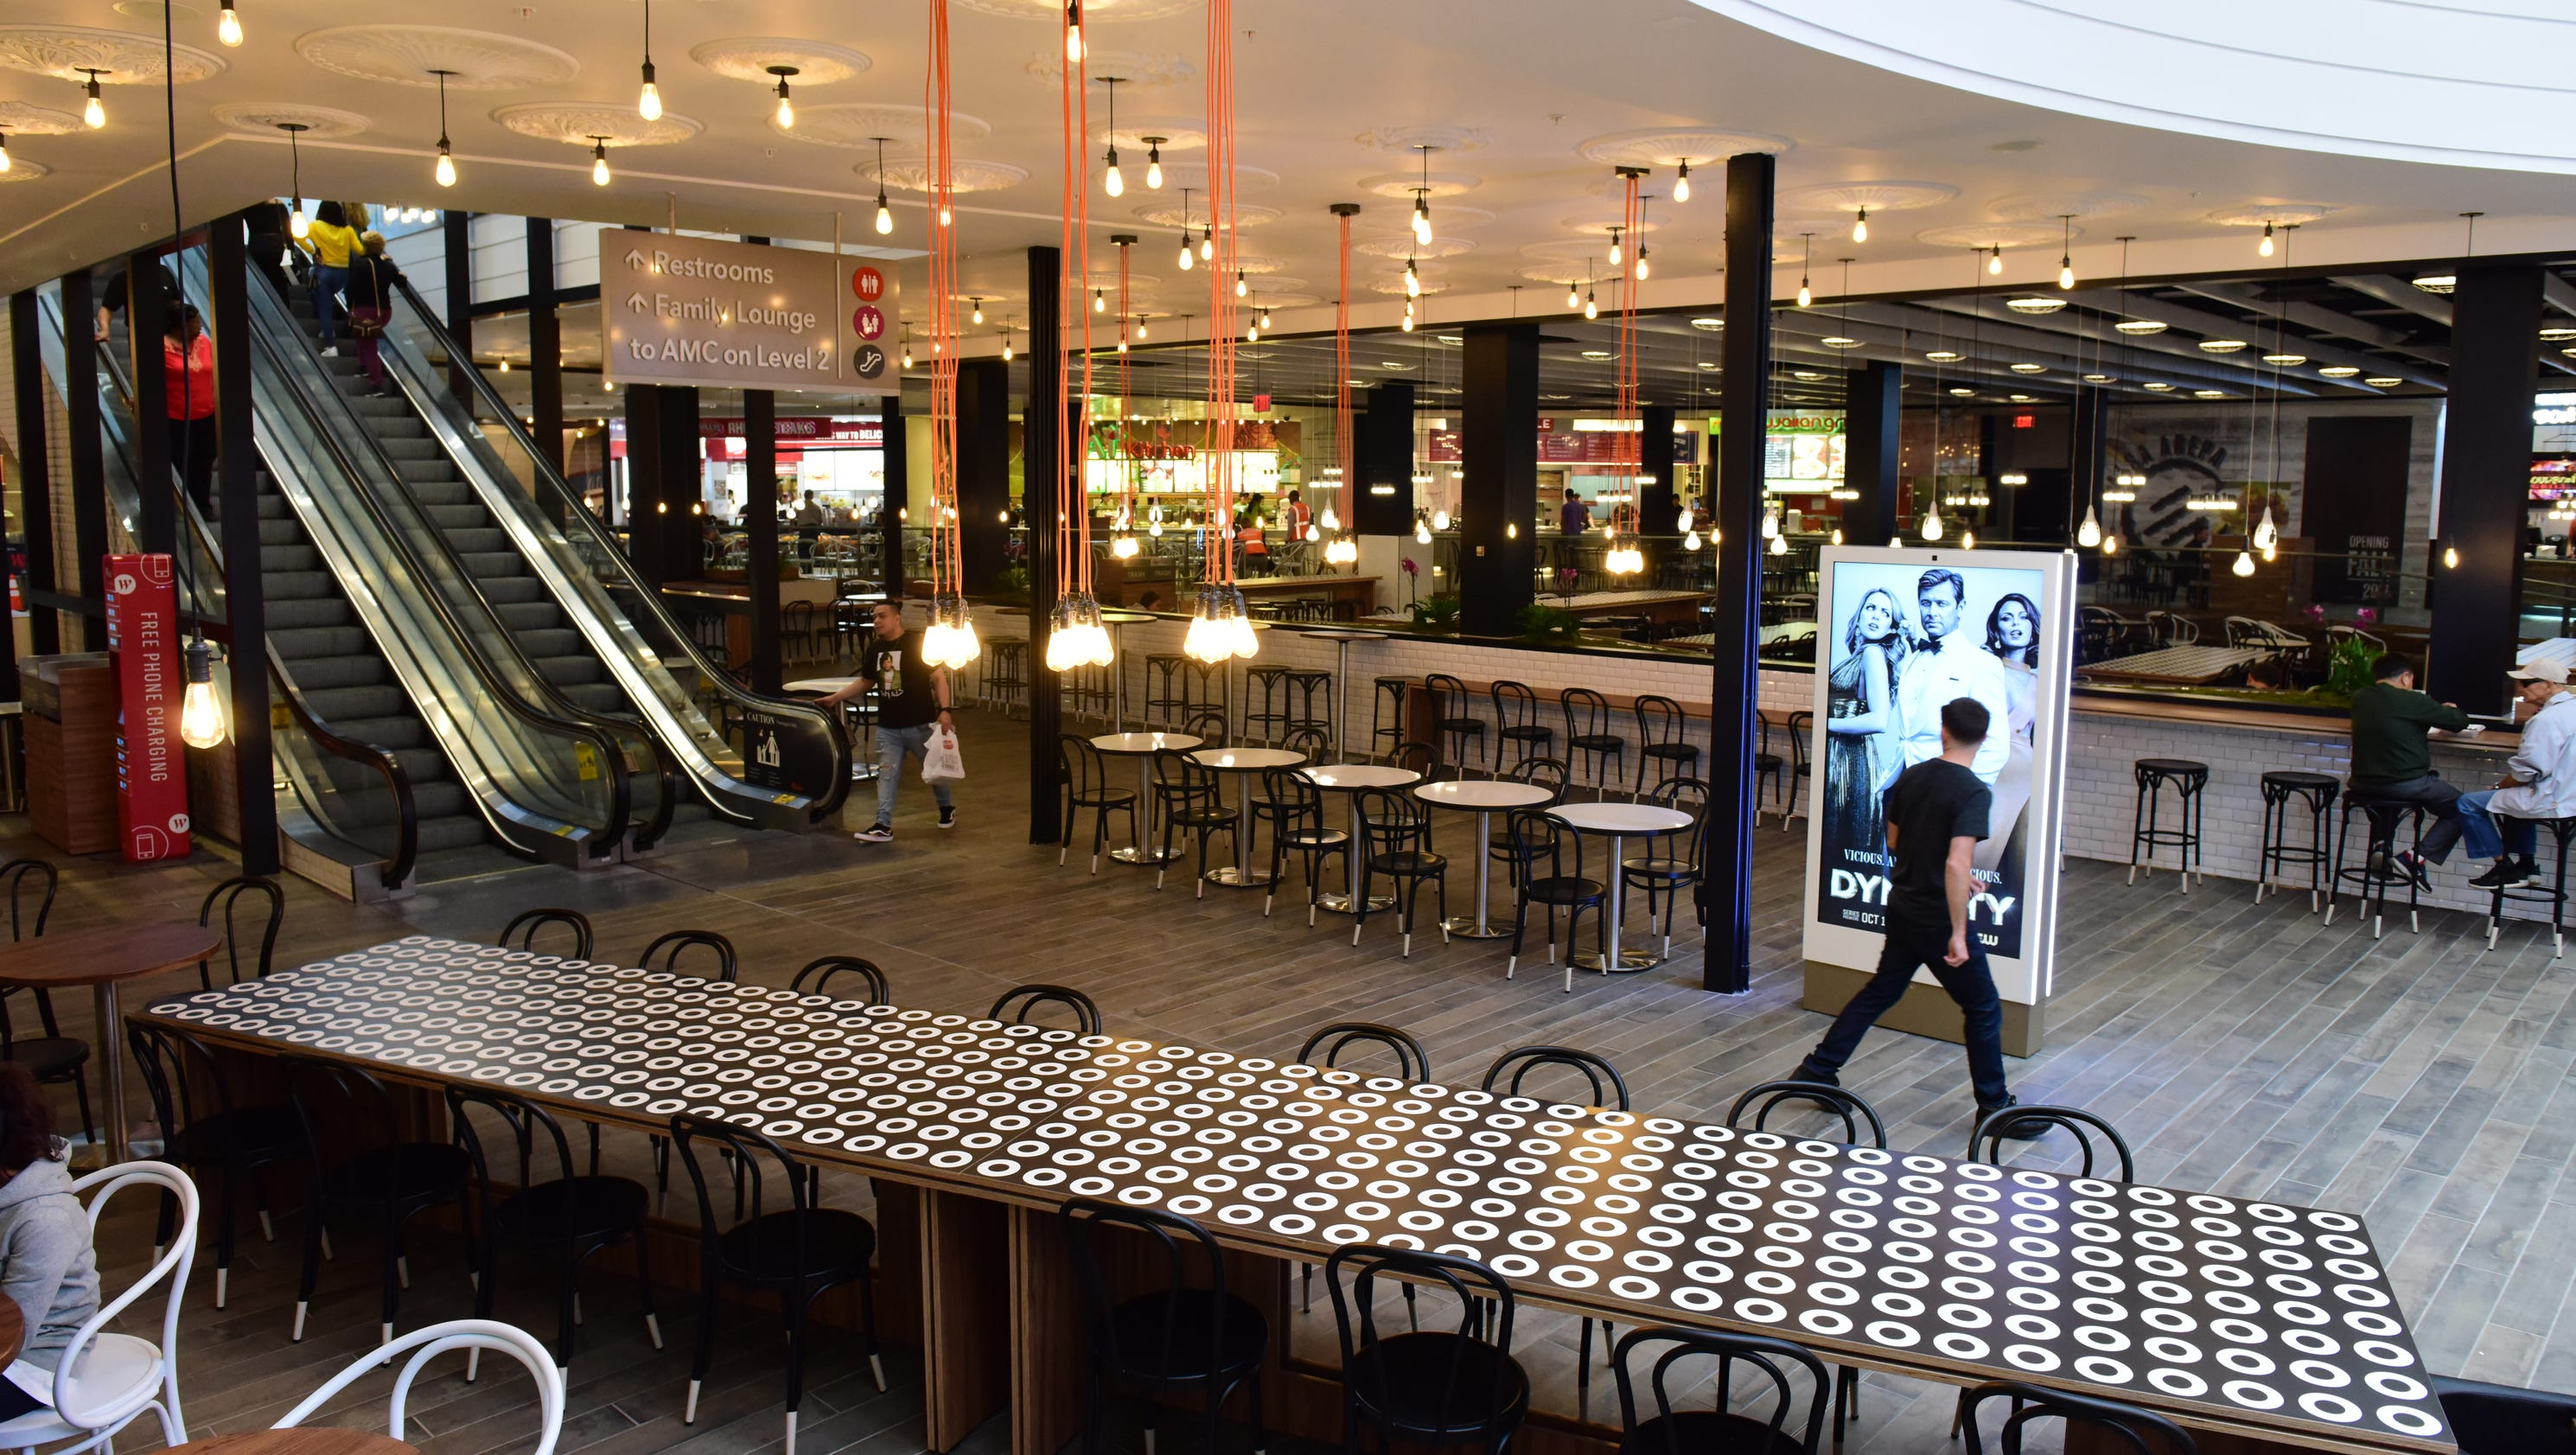 Food Court Play Space At Westfield Garden State Plaza Gets A Makeover